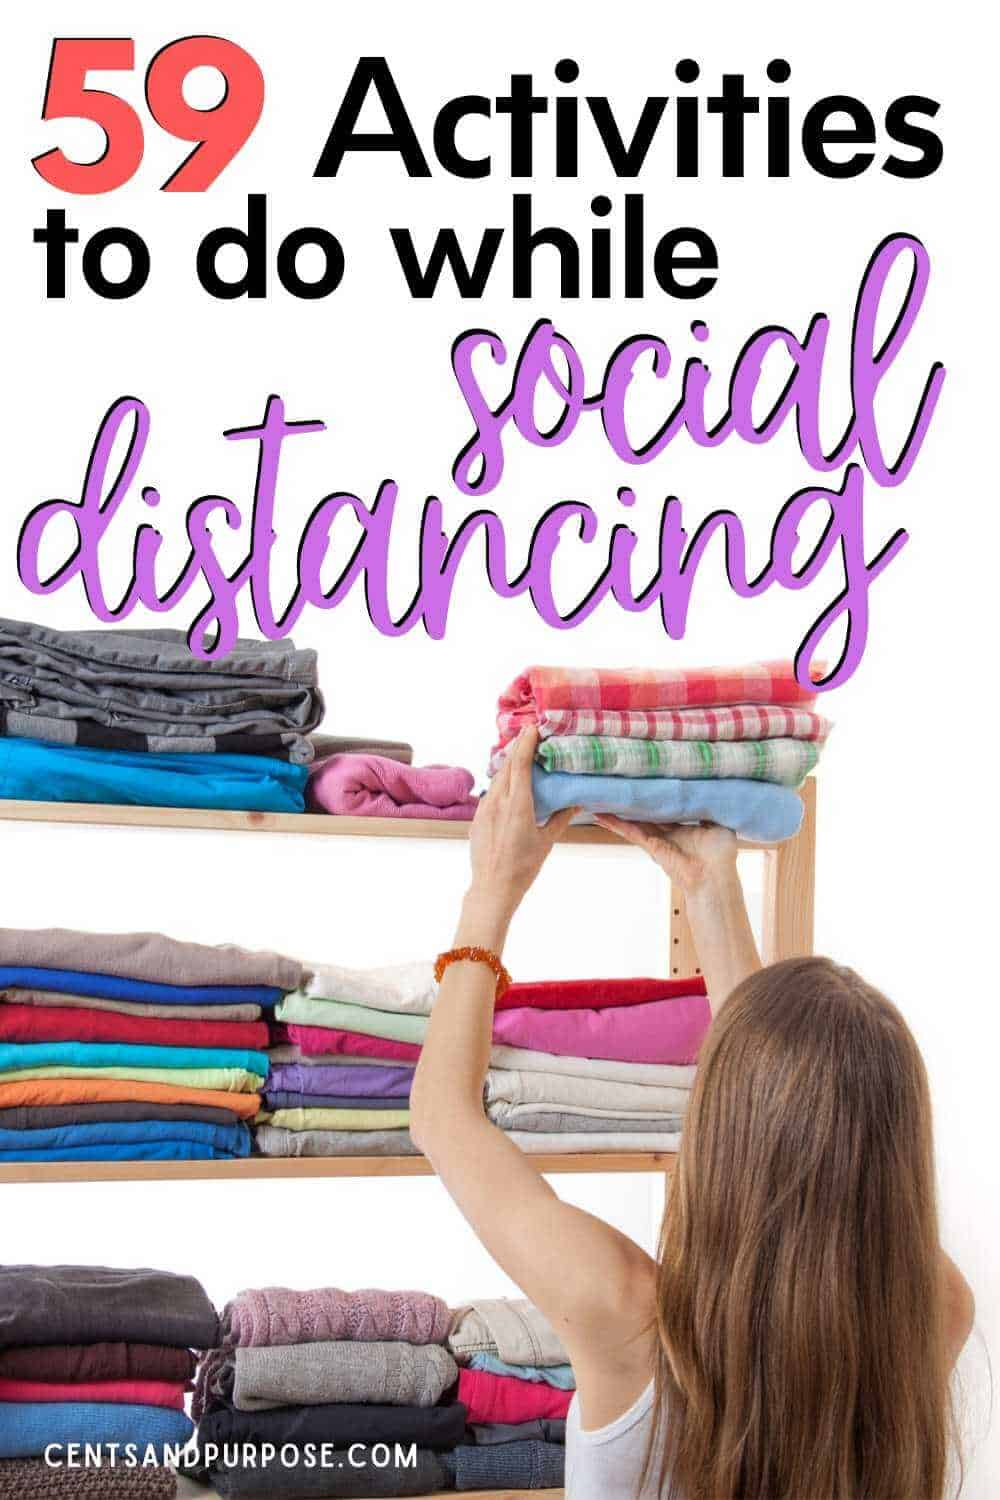 Woman putting folded clothing on a shelf with text that reads: 59 activities to do while social distancing